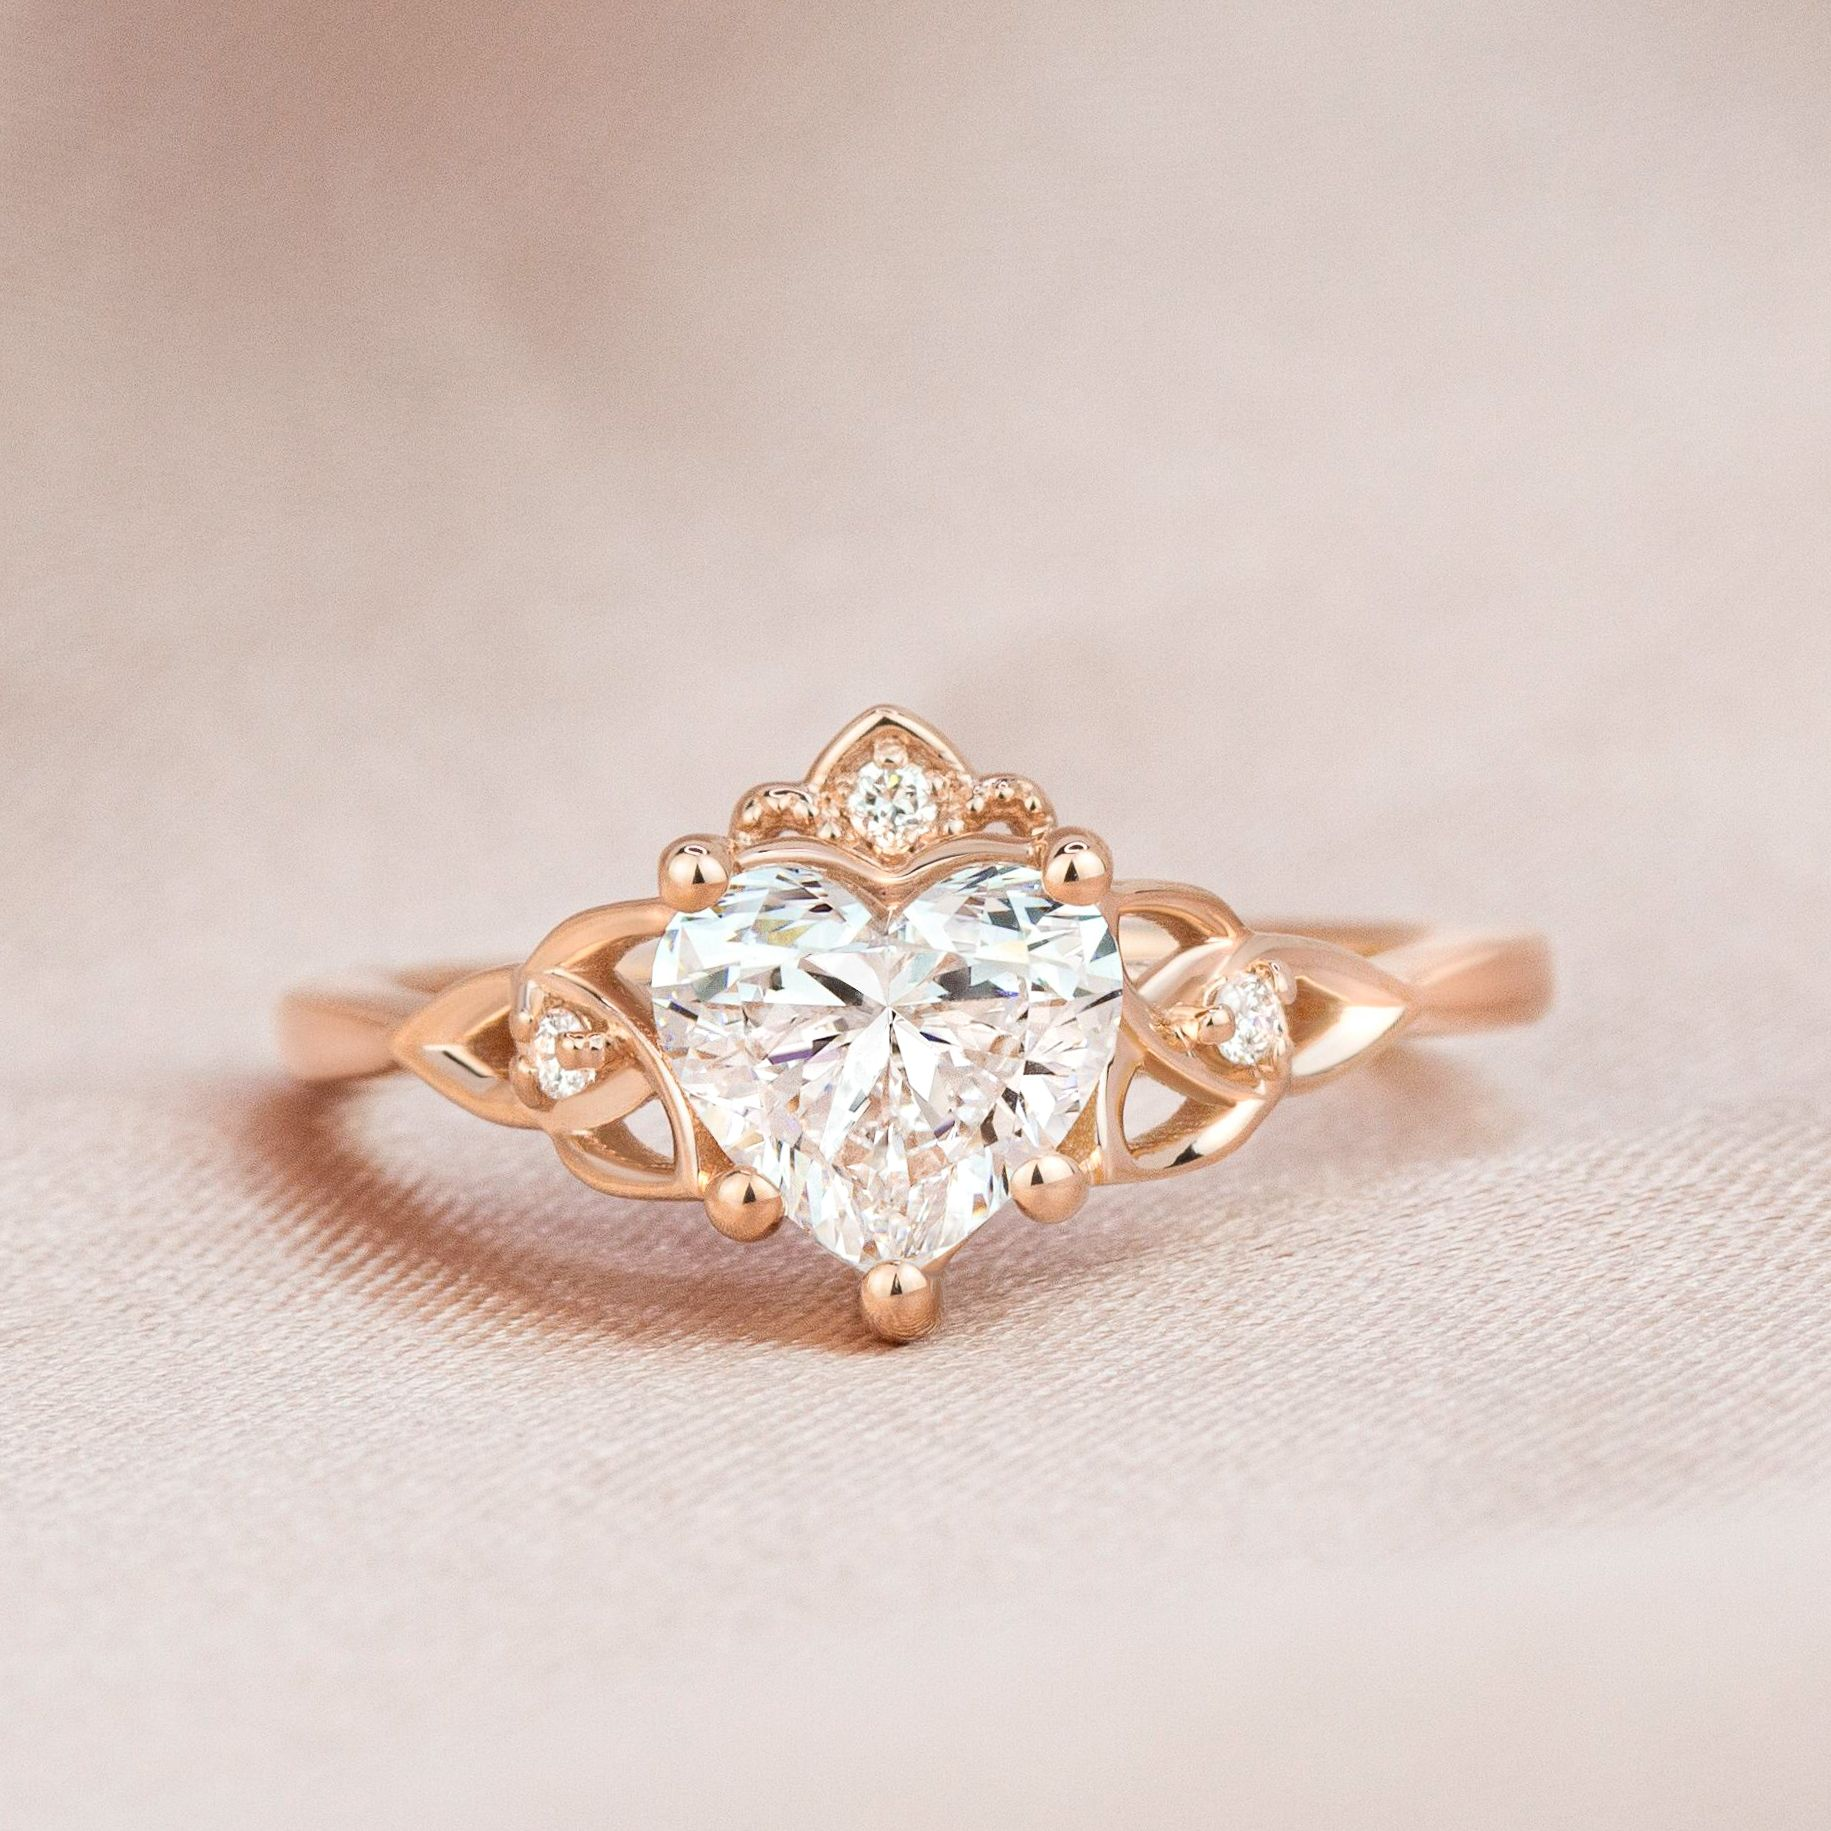 Rose Gold Plated Ring Crown Cluster Engagement Ring,Gift Ring,Silver Zircon Ring,Custom ring Vintage Art Deco Ring